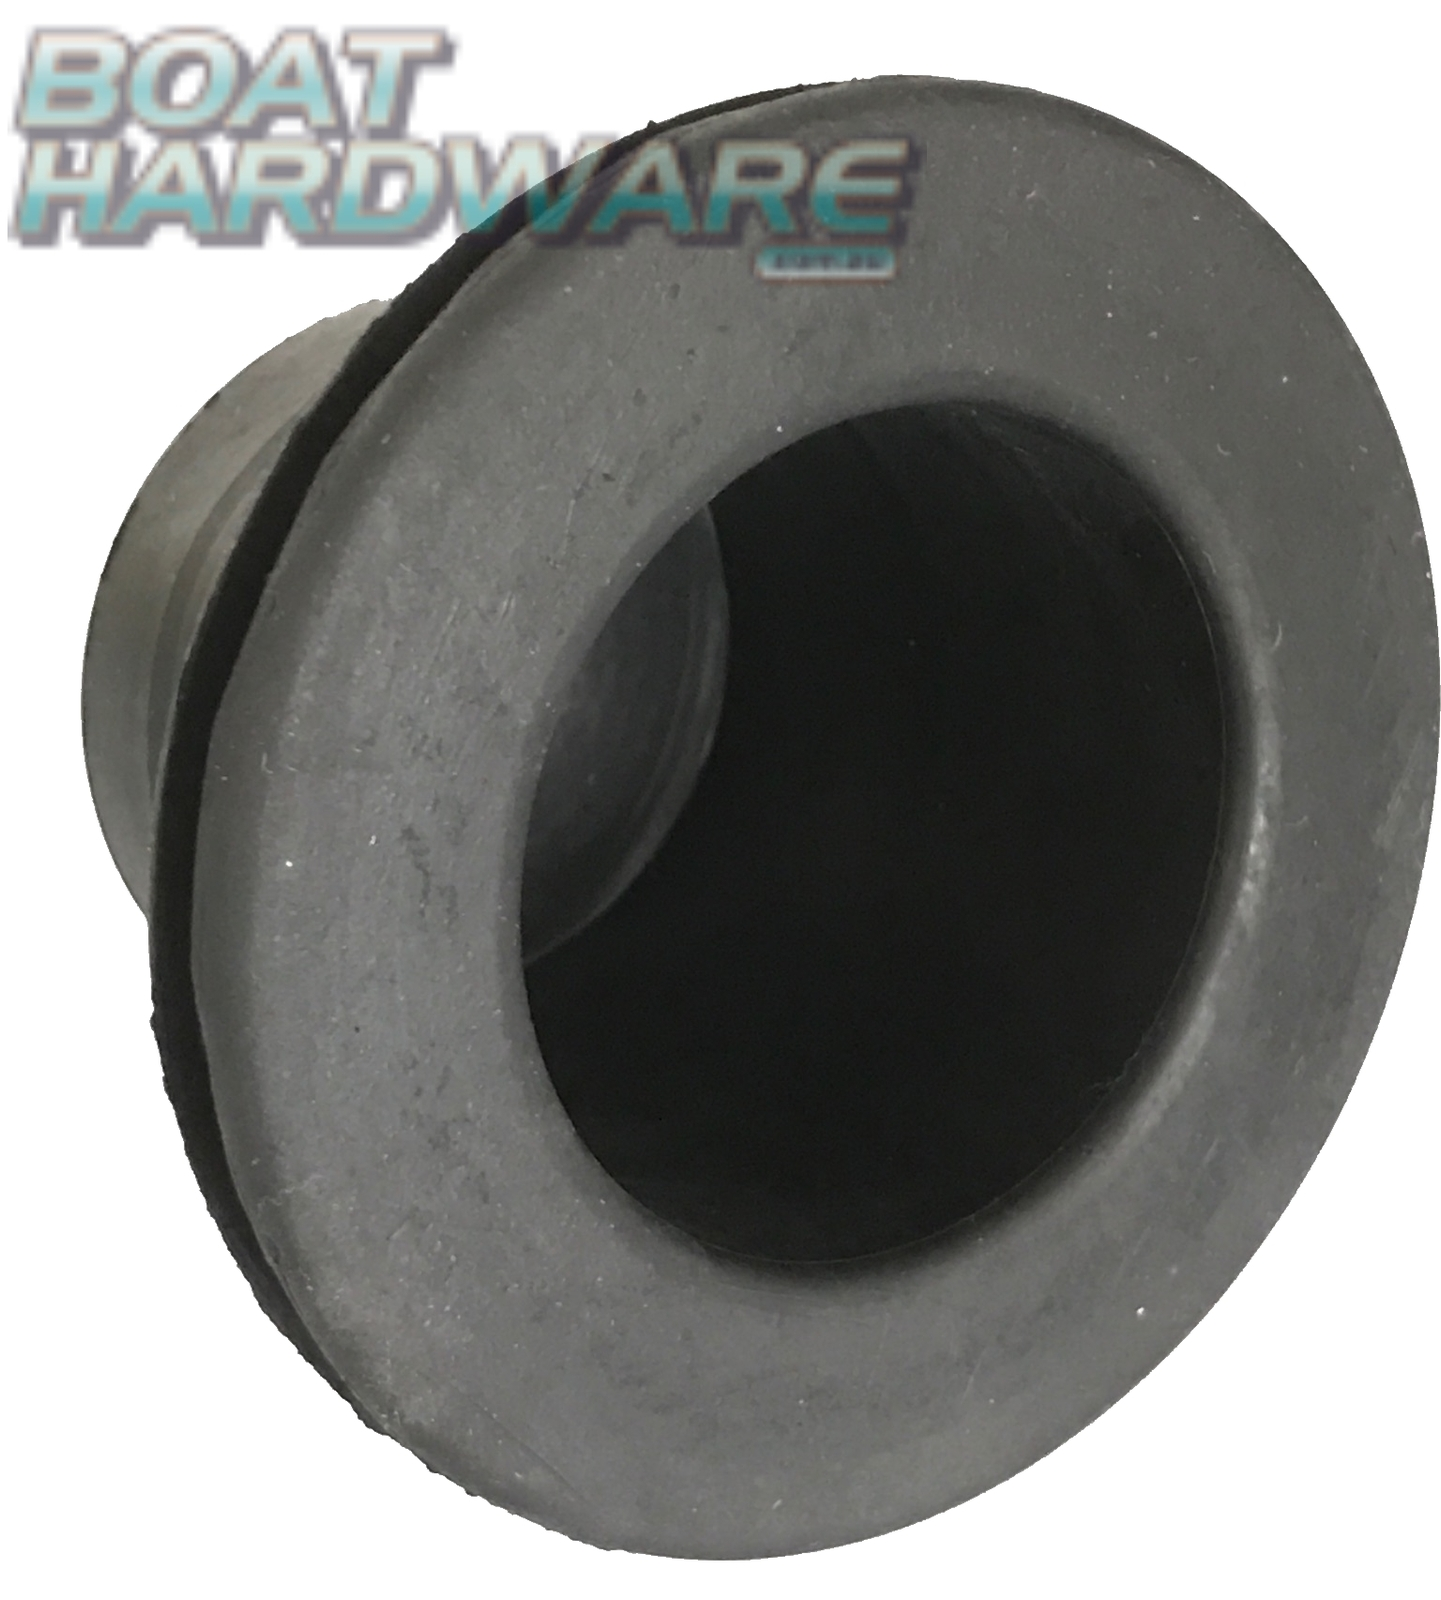 Black Round Rubber Slop Stop Grommet For Steering Cable